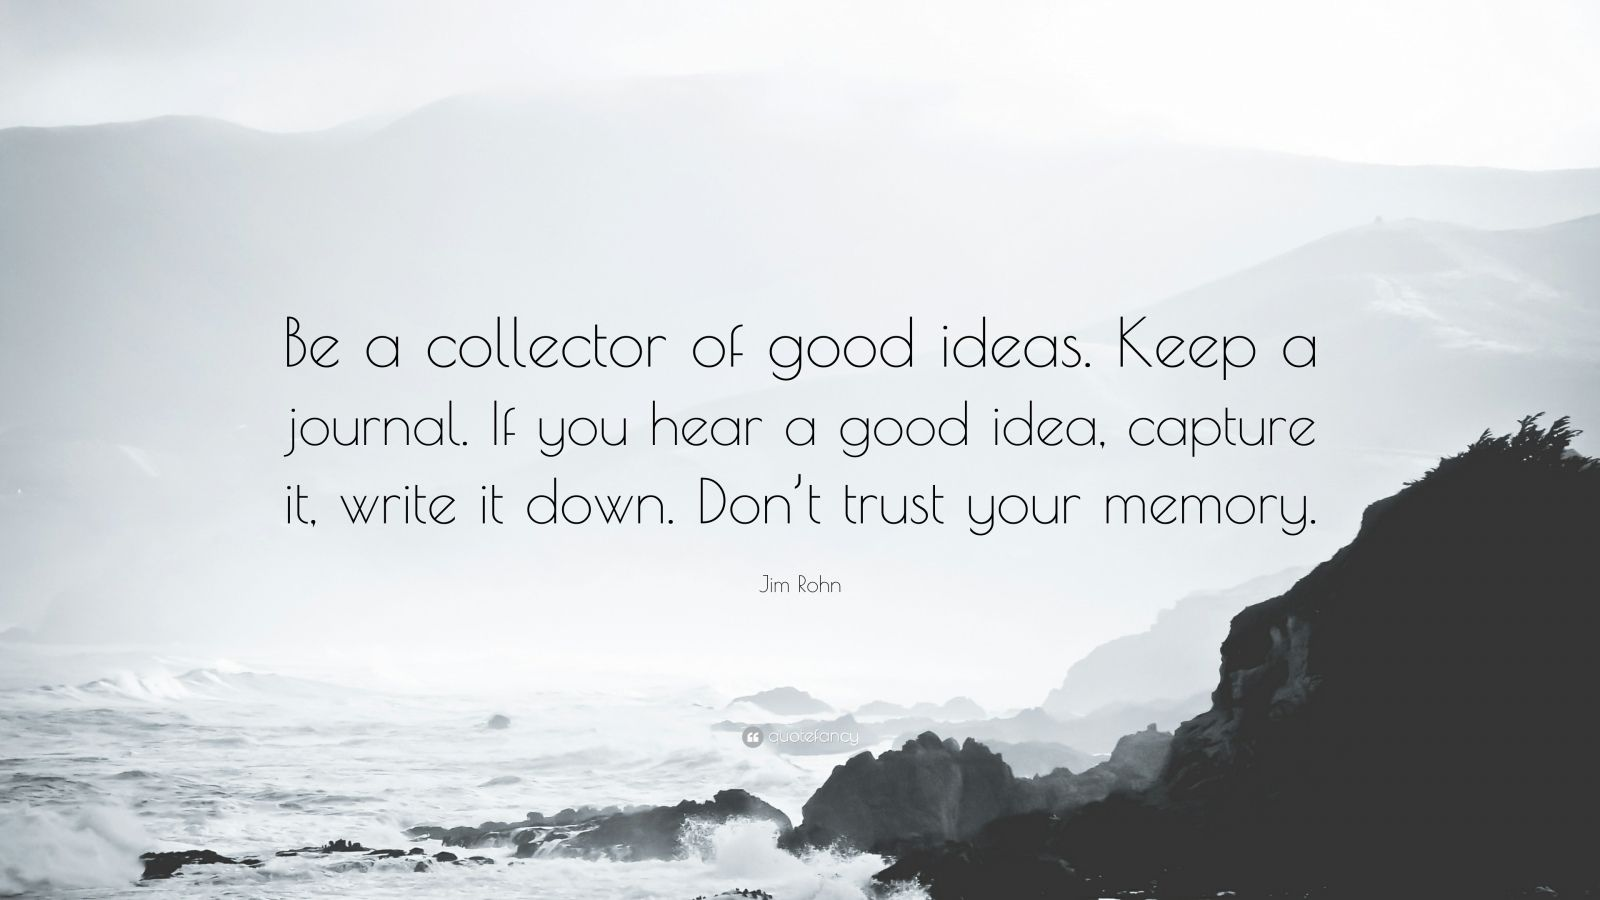 """Jim Rohn Quote: """"Be a collector of good ideas. Keep a journal. If you hear a good idea, capture it, write it down. Don't trust your memory."""""""